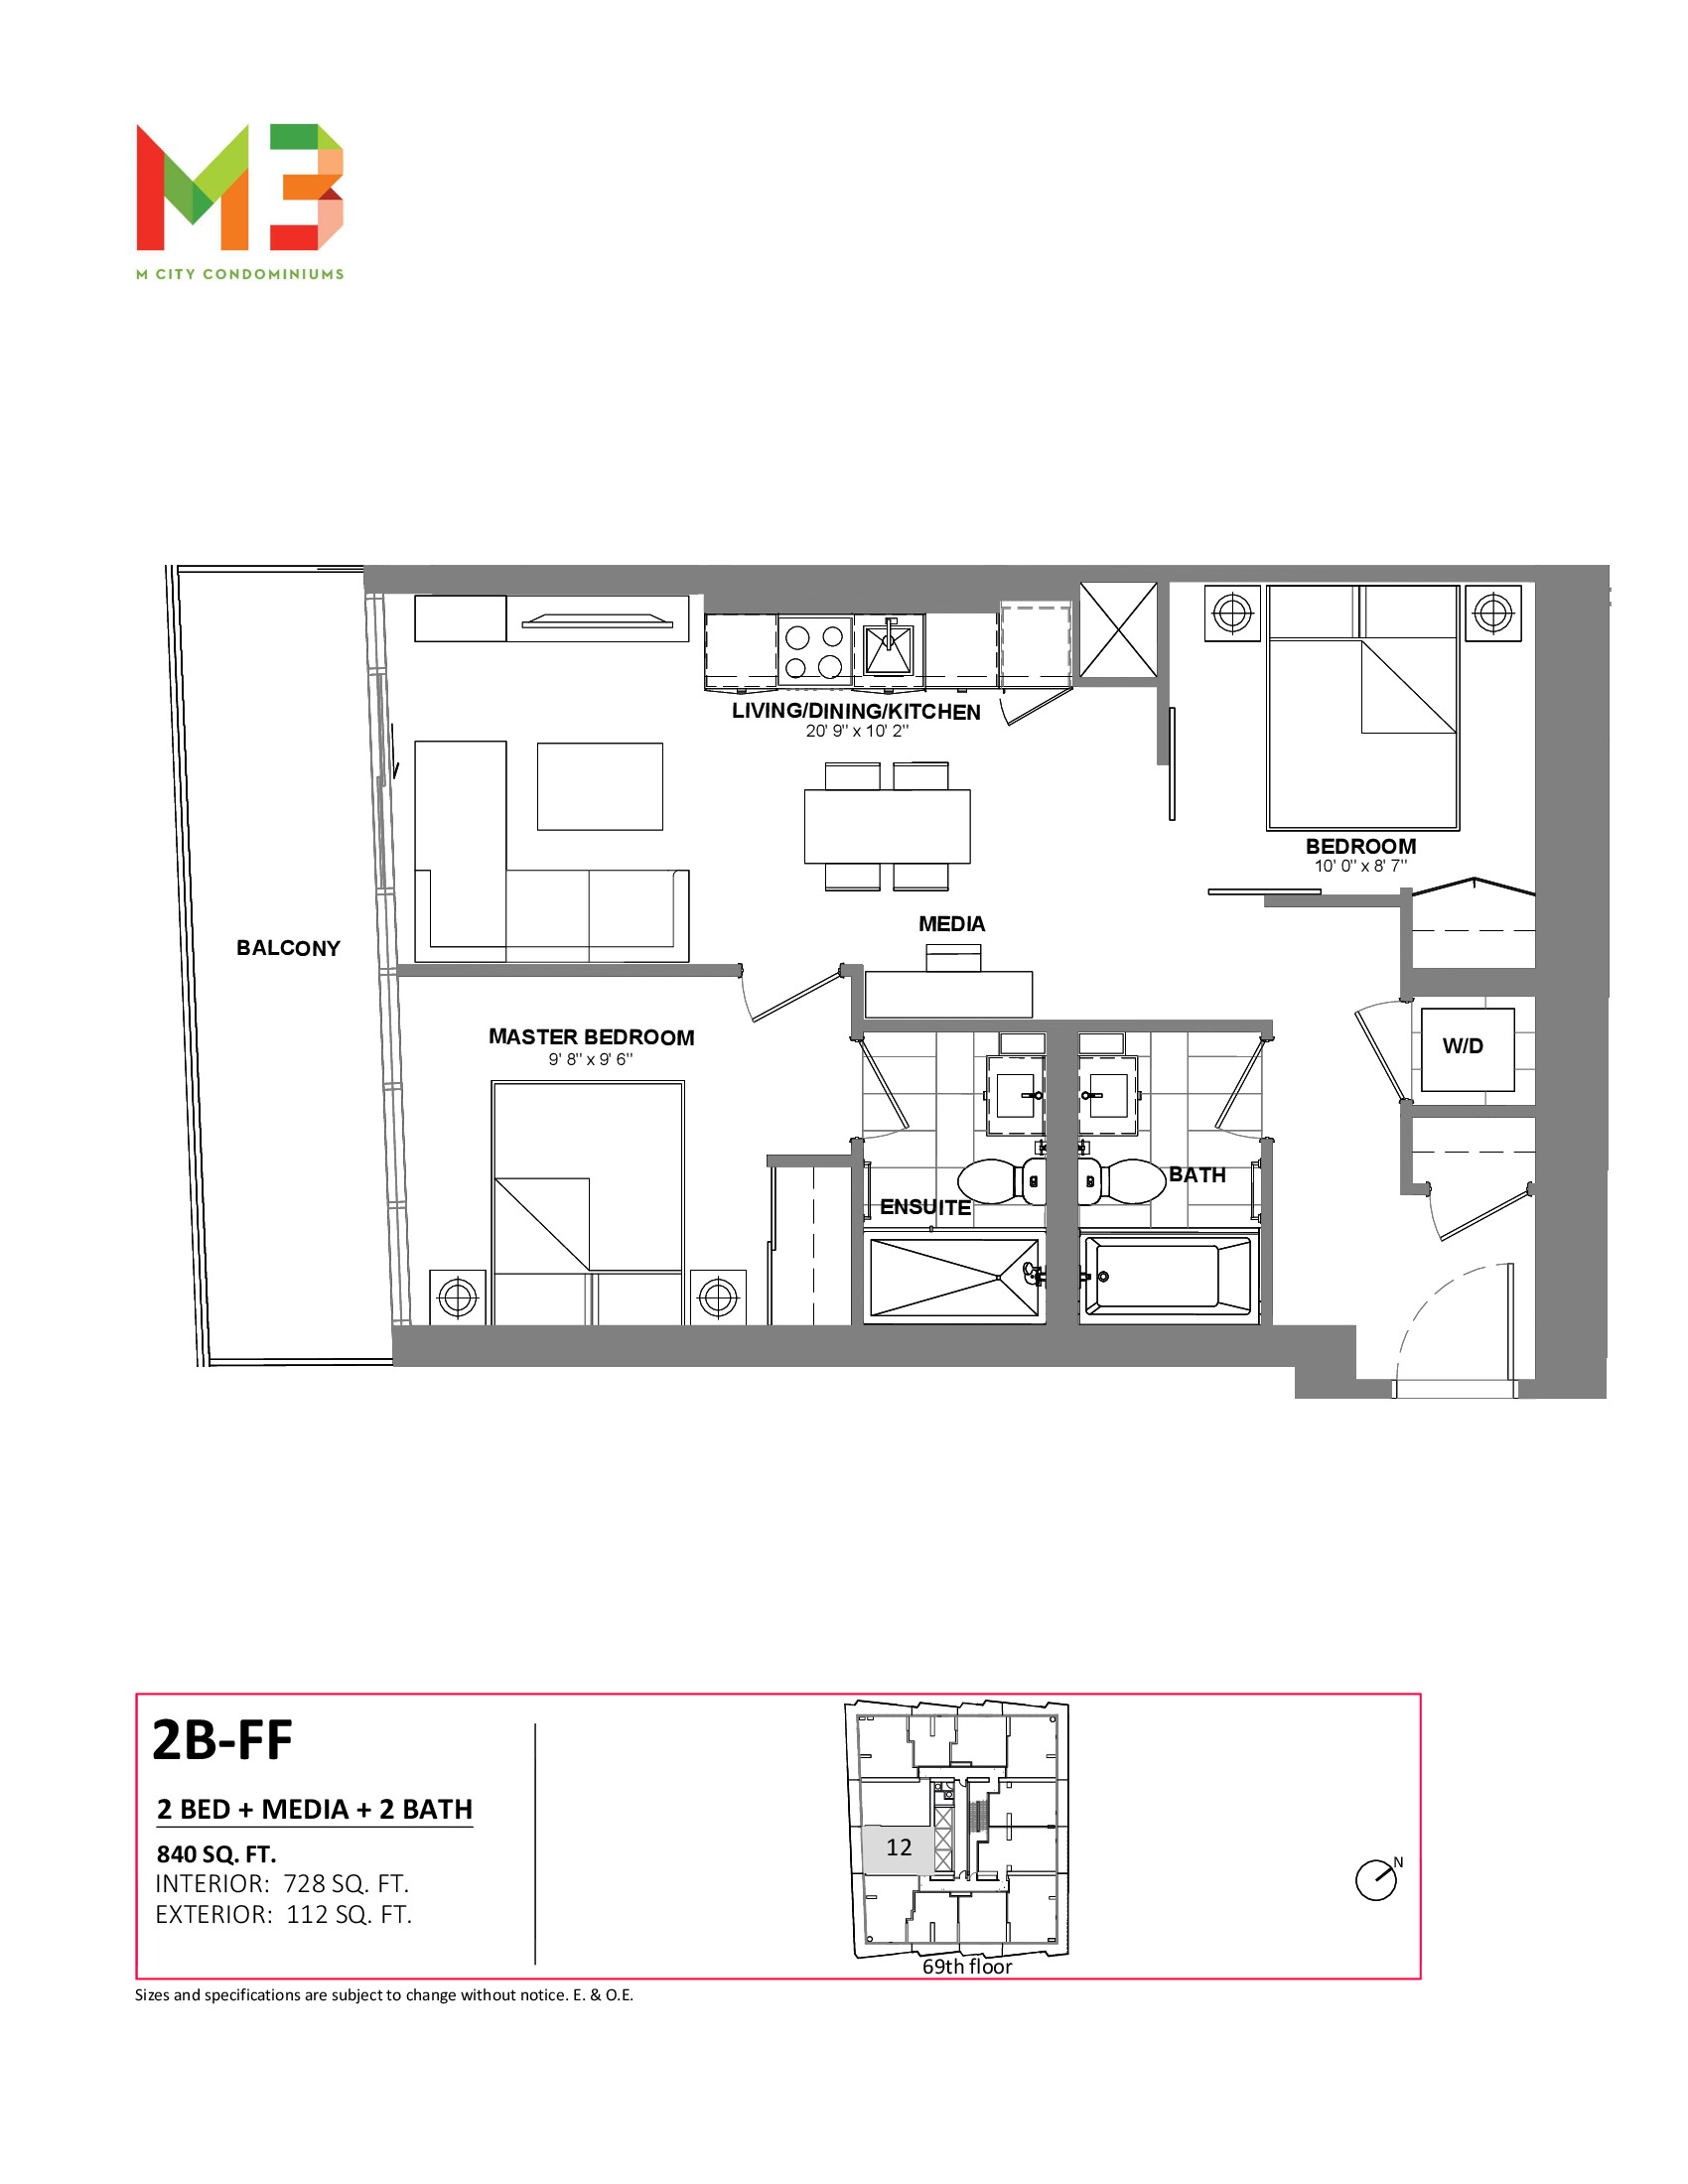 2B-FF Floor Plan at M3 Condos - 728 sq.ft